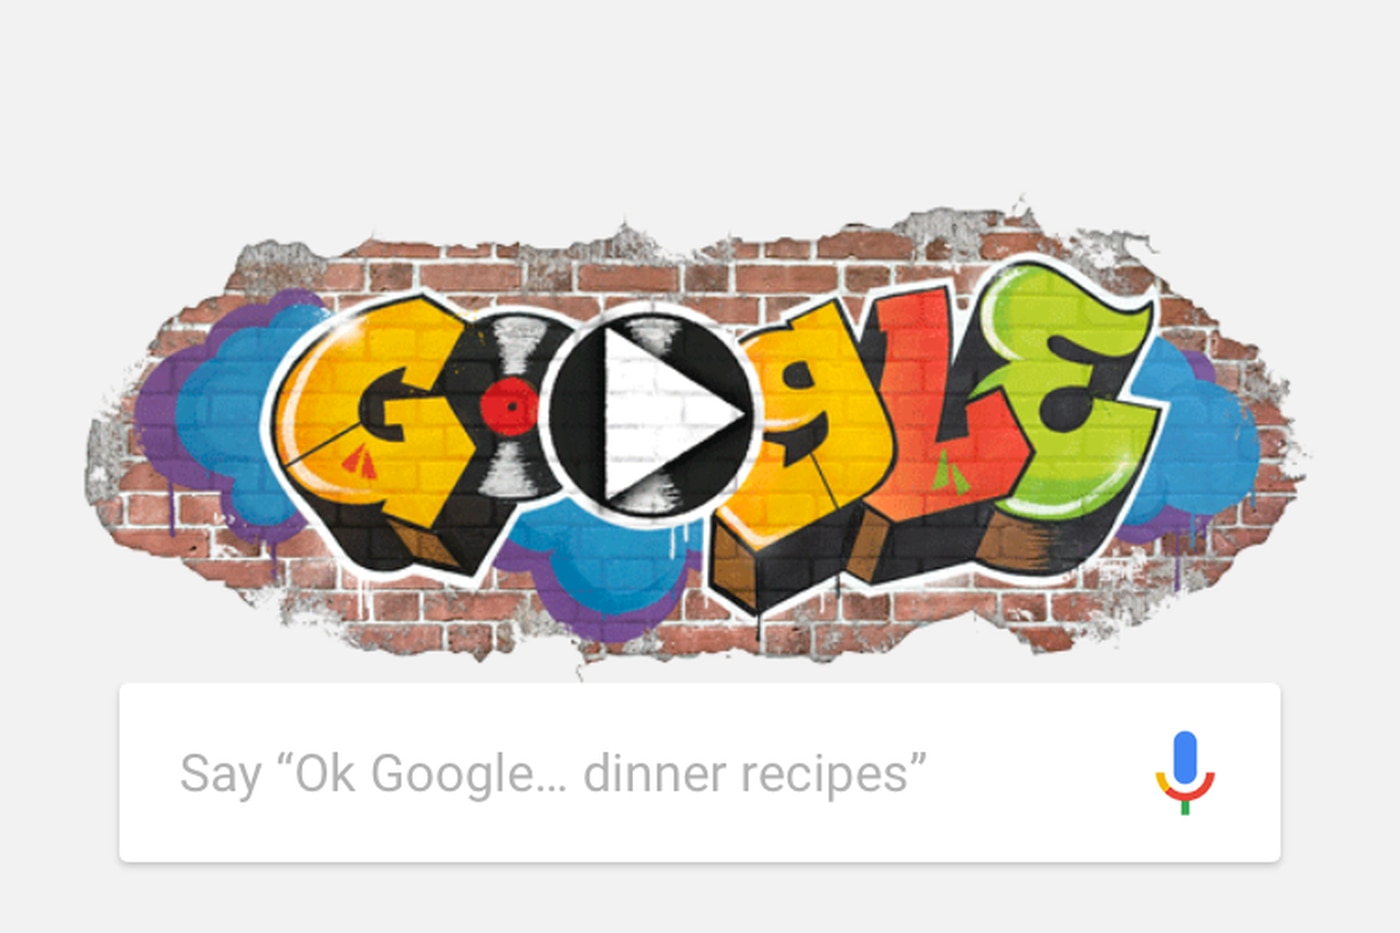 Google's homage to hip-hop made my Friday